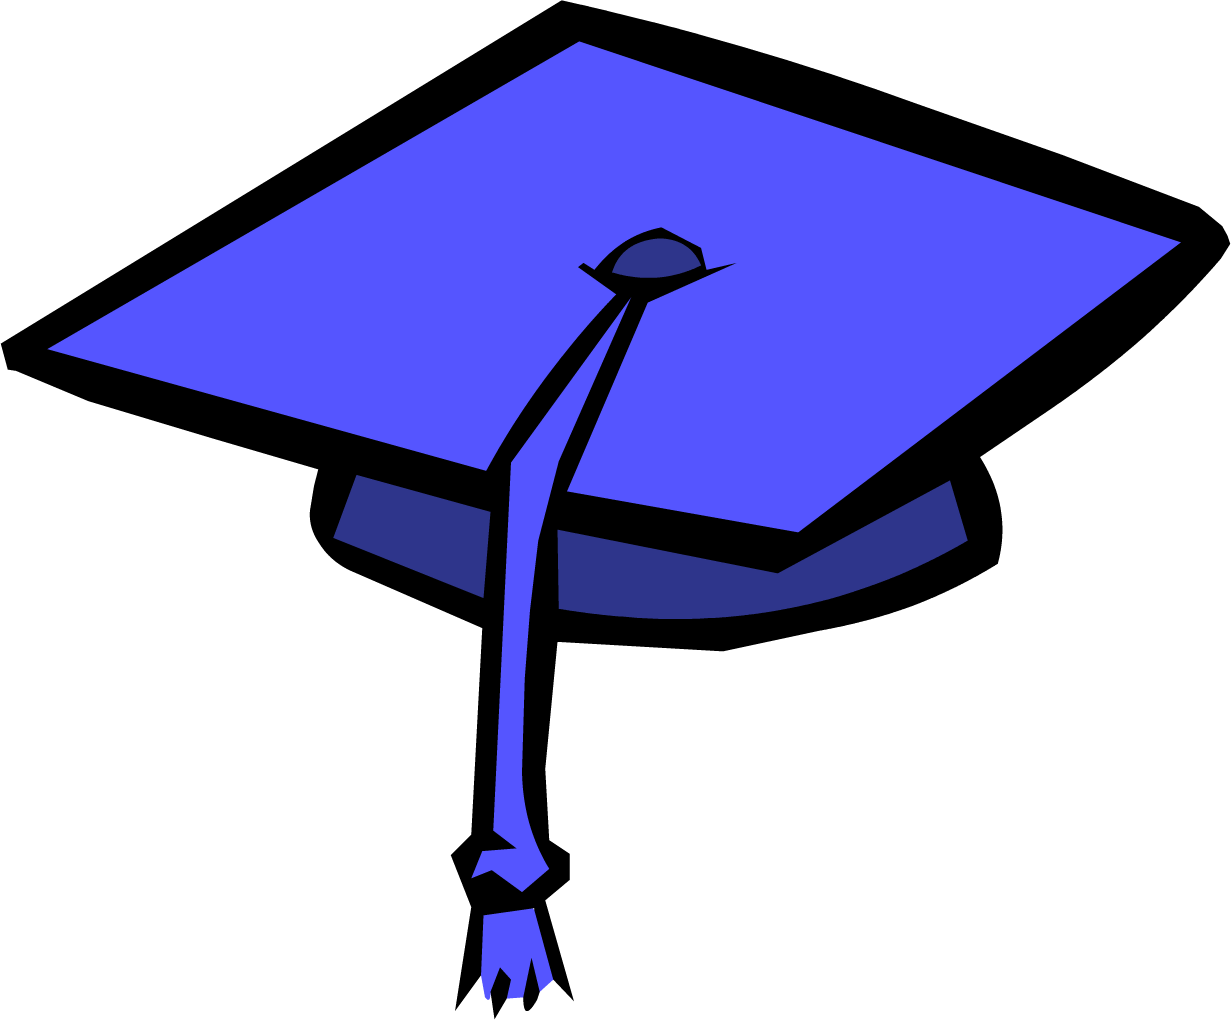 Diploma clipart purple.  collection of graduation